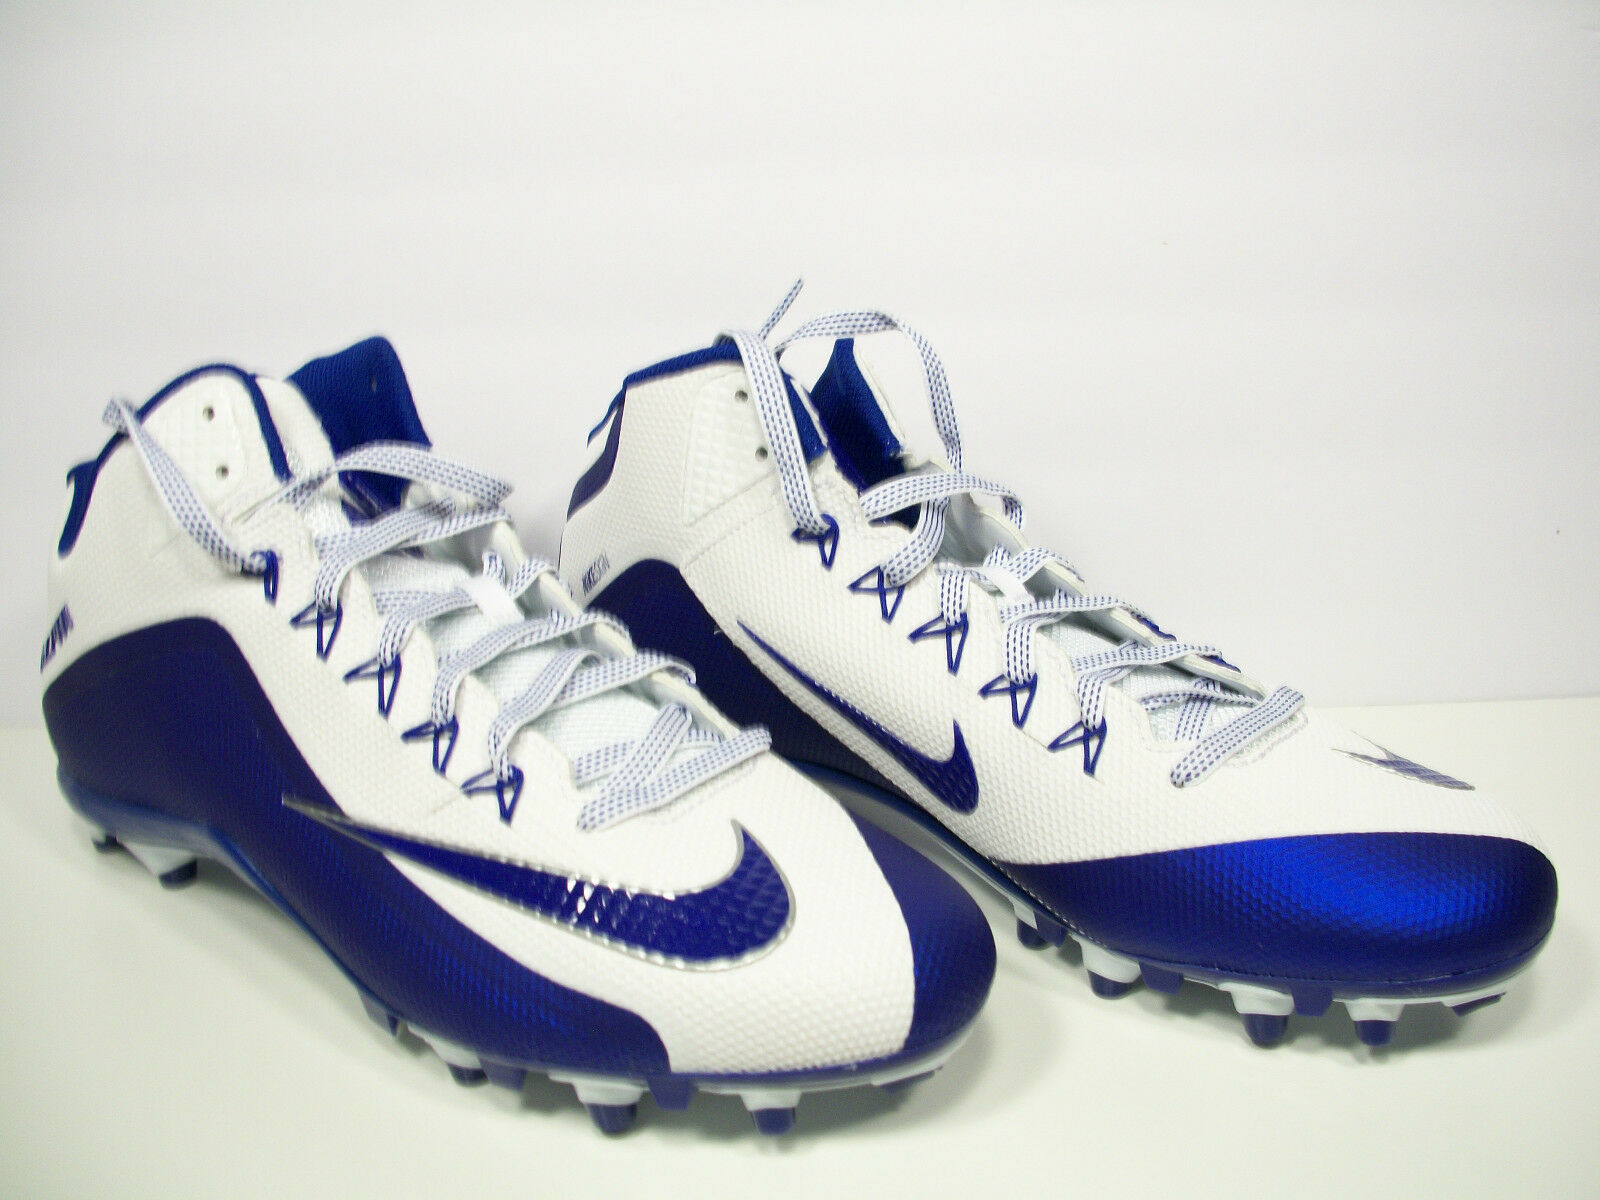 NIKE Mens Alpha Pro 2 3 4 TD Football Cleats Royal bluee White 729444-109 13